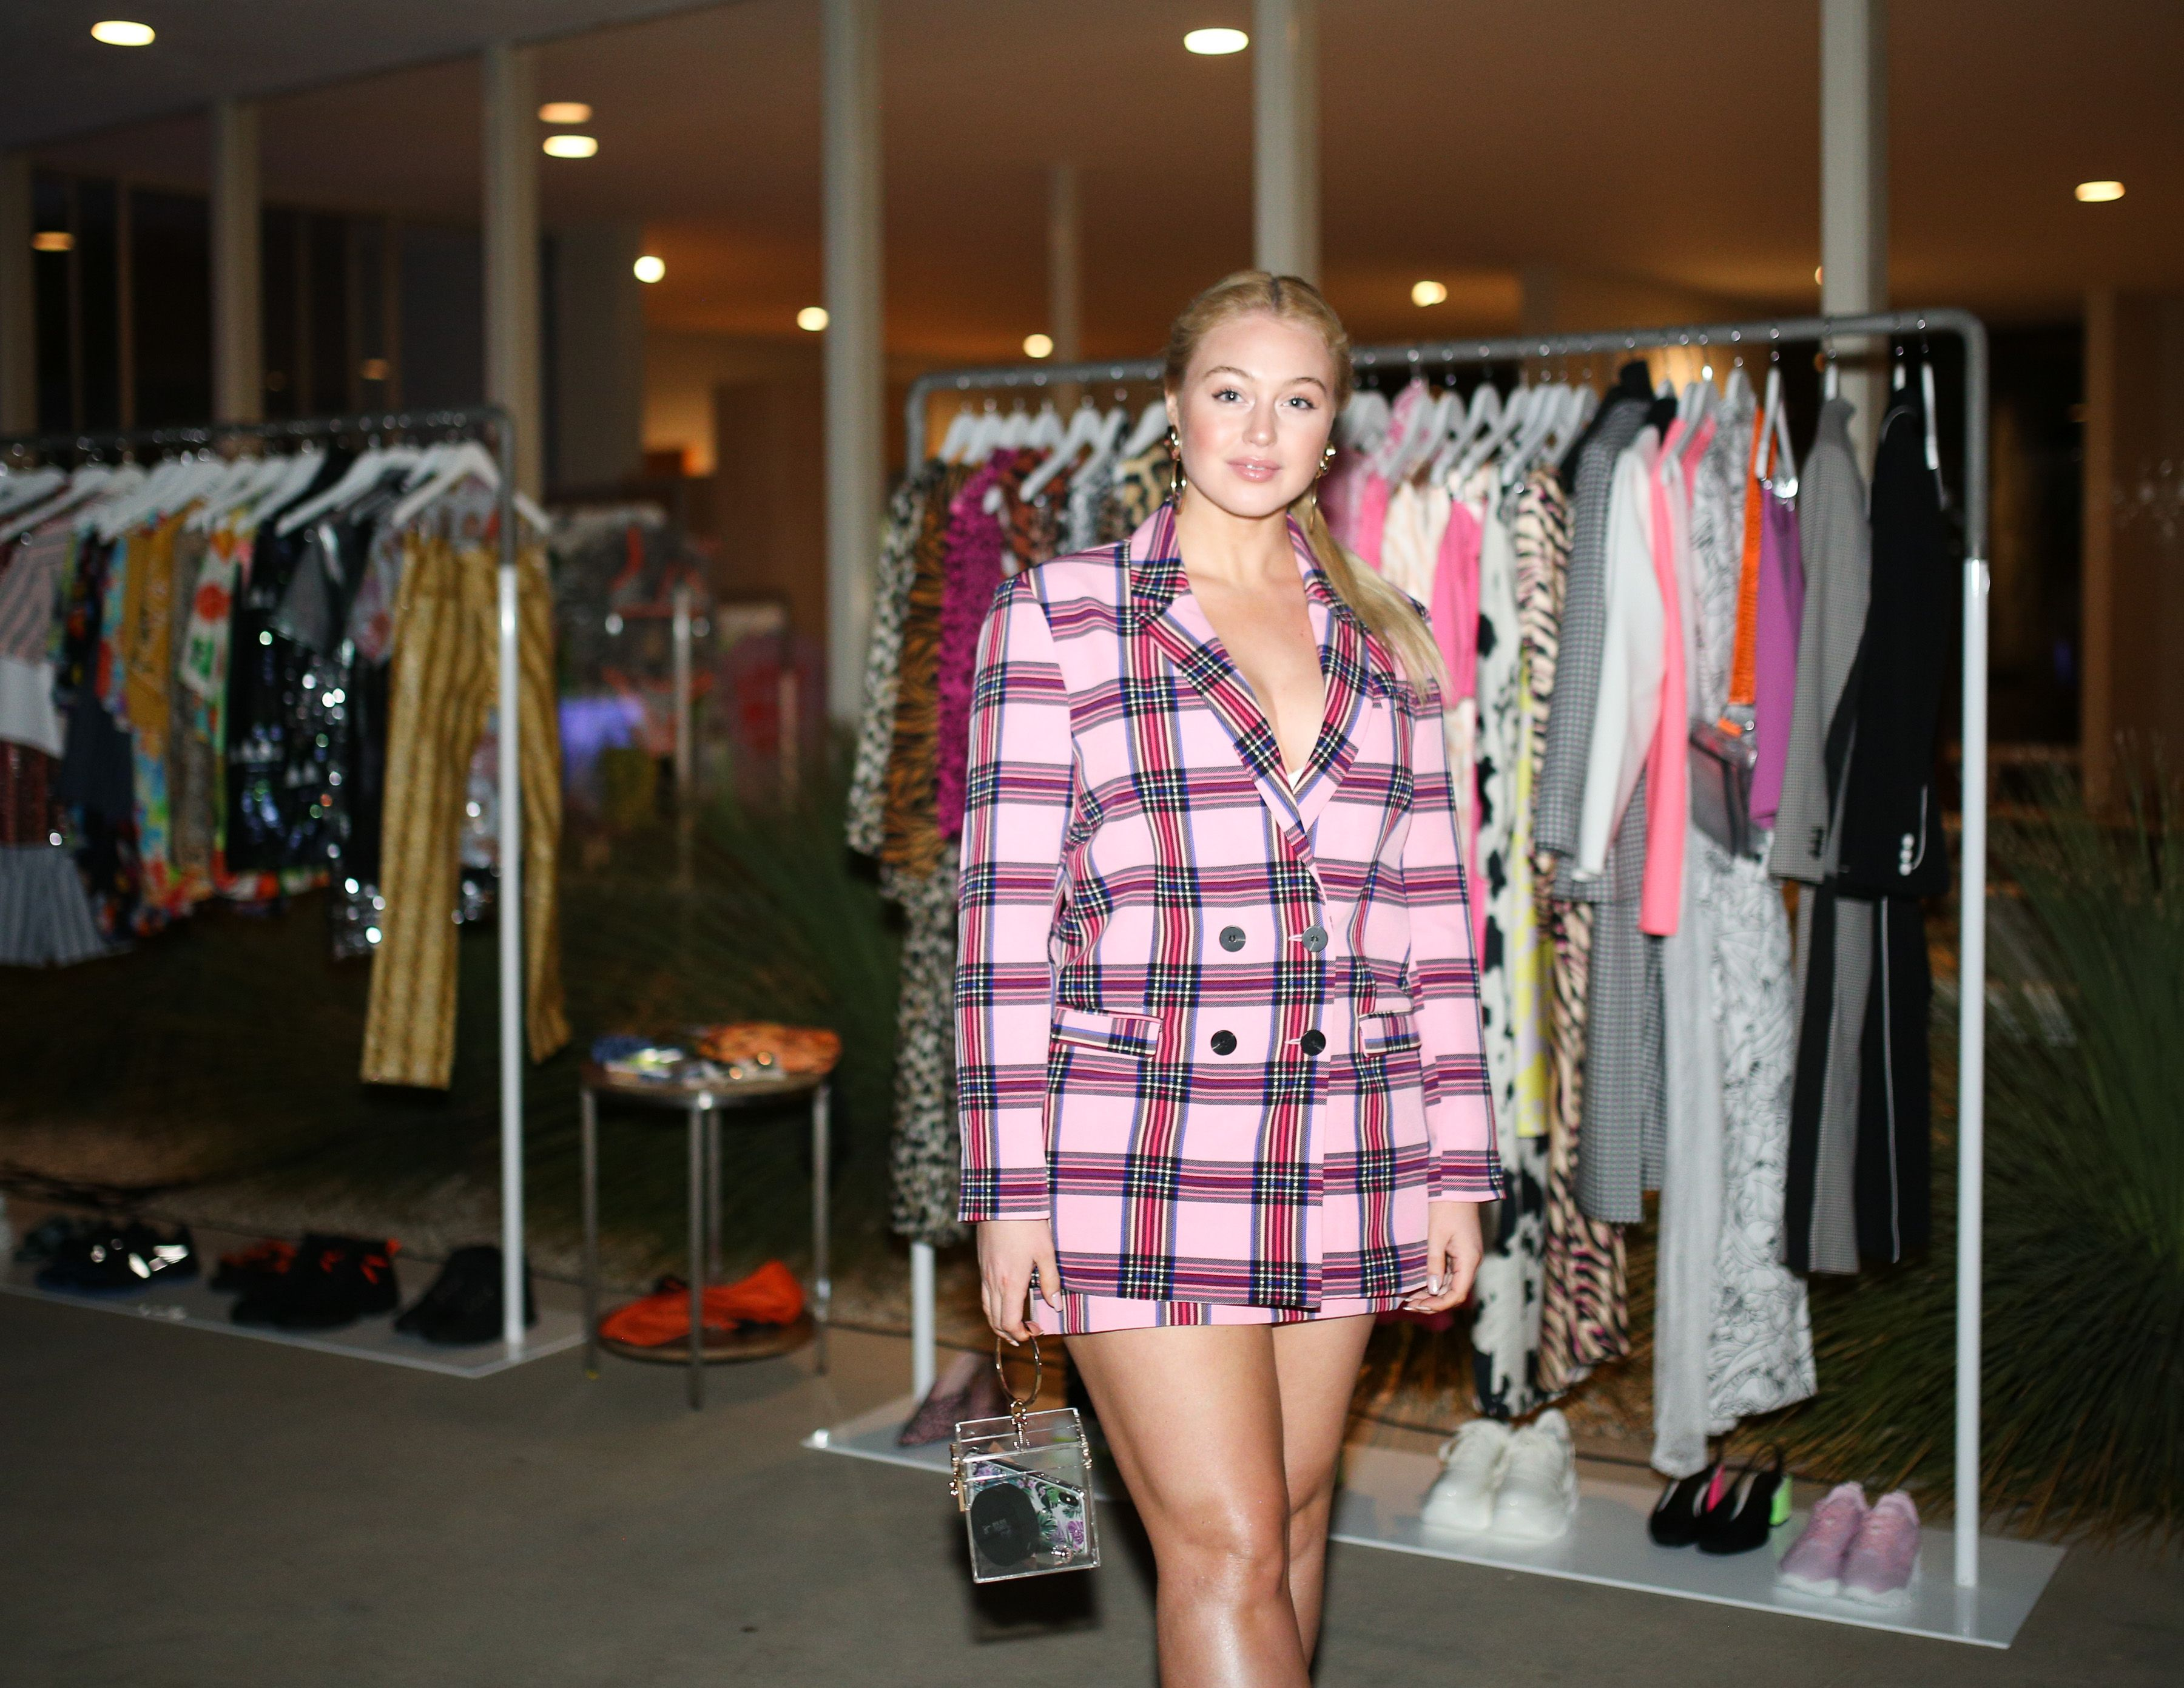 Iskra Lawrence Iskra Lawrence celebrates the latest Asos Design Collection at a dinner party hosted by Kiersey Clemons and stylists Wayman Bannerman and Micah McDonald in Beverly Hills, California on March 28.